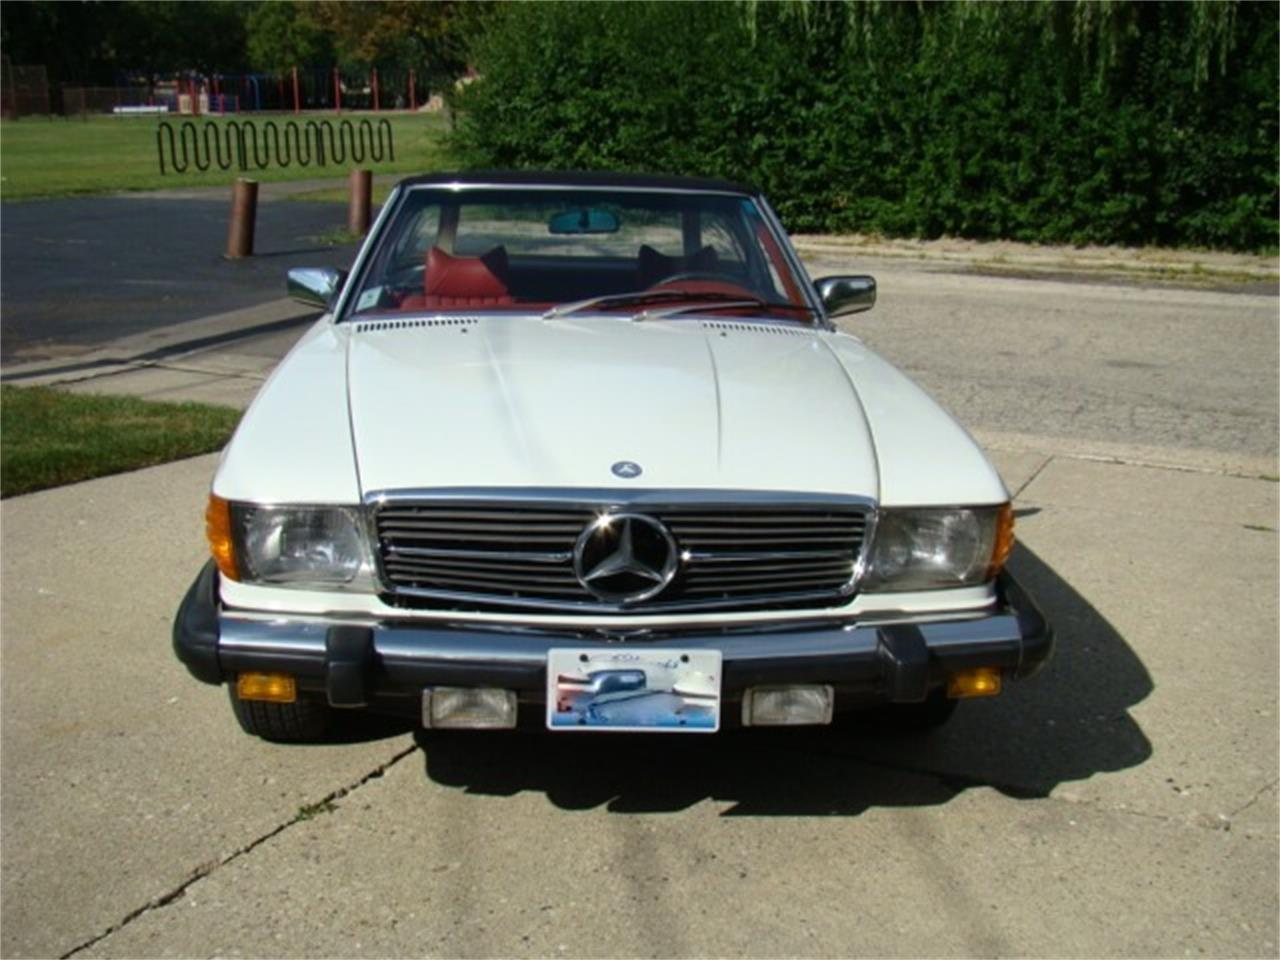 Large Picture of 1978 Mercedes-Benz 450SL located in Illinois - $16,990.00 Offered by a Private Seller - F3LR